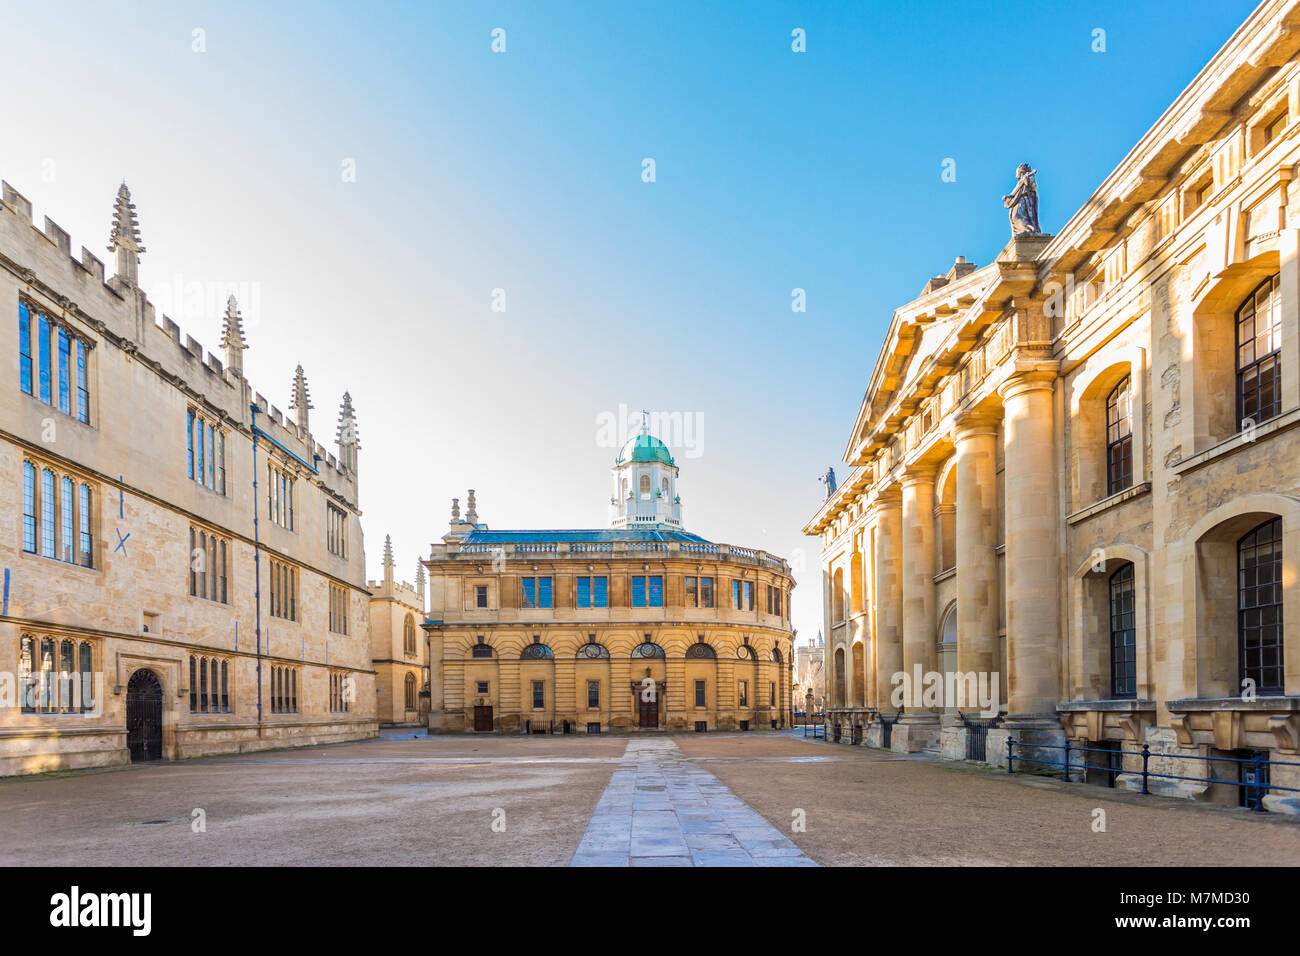 The Sheldonian Theatre, located in Oxford, England, was built from 1664 to 1669 after a design by Christopher Wren - Stock Image